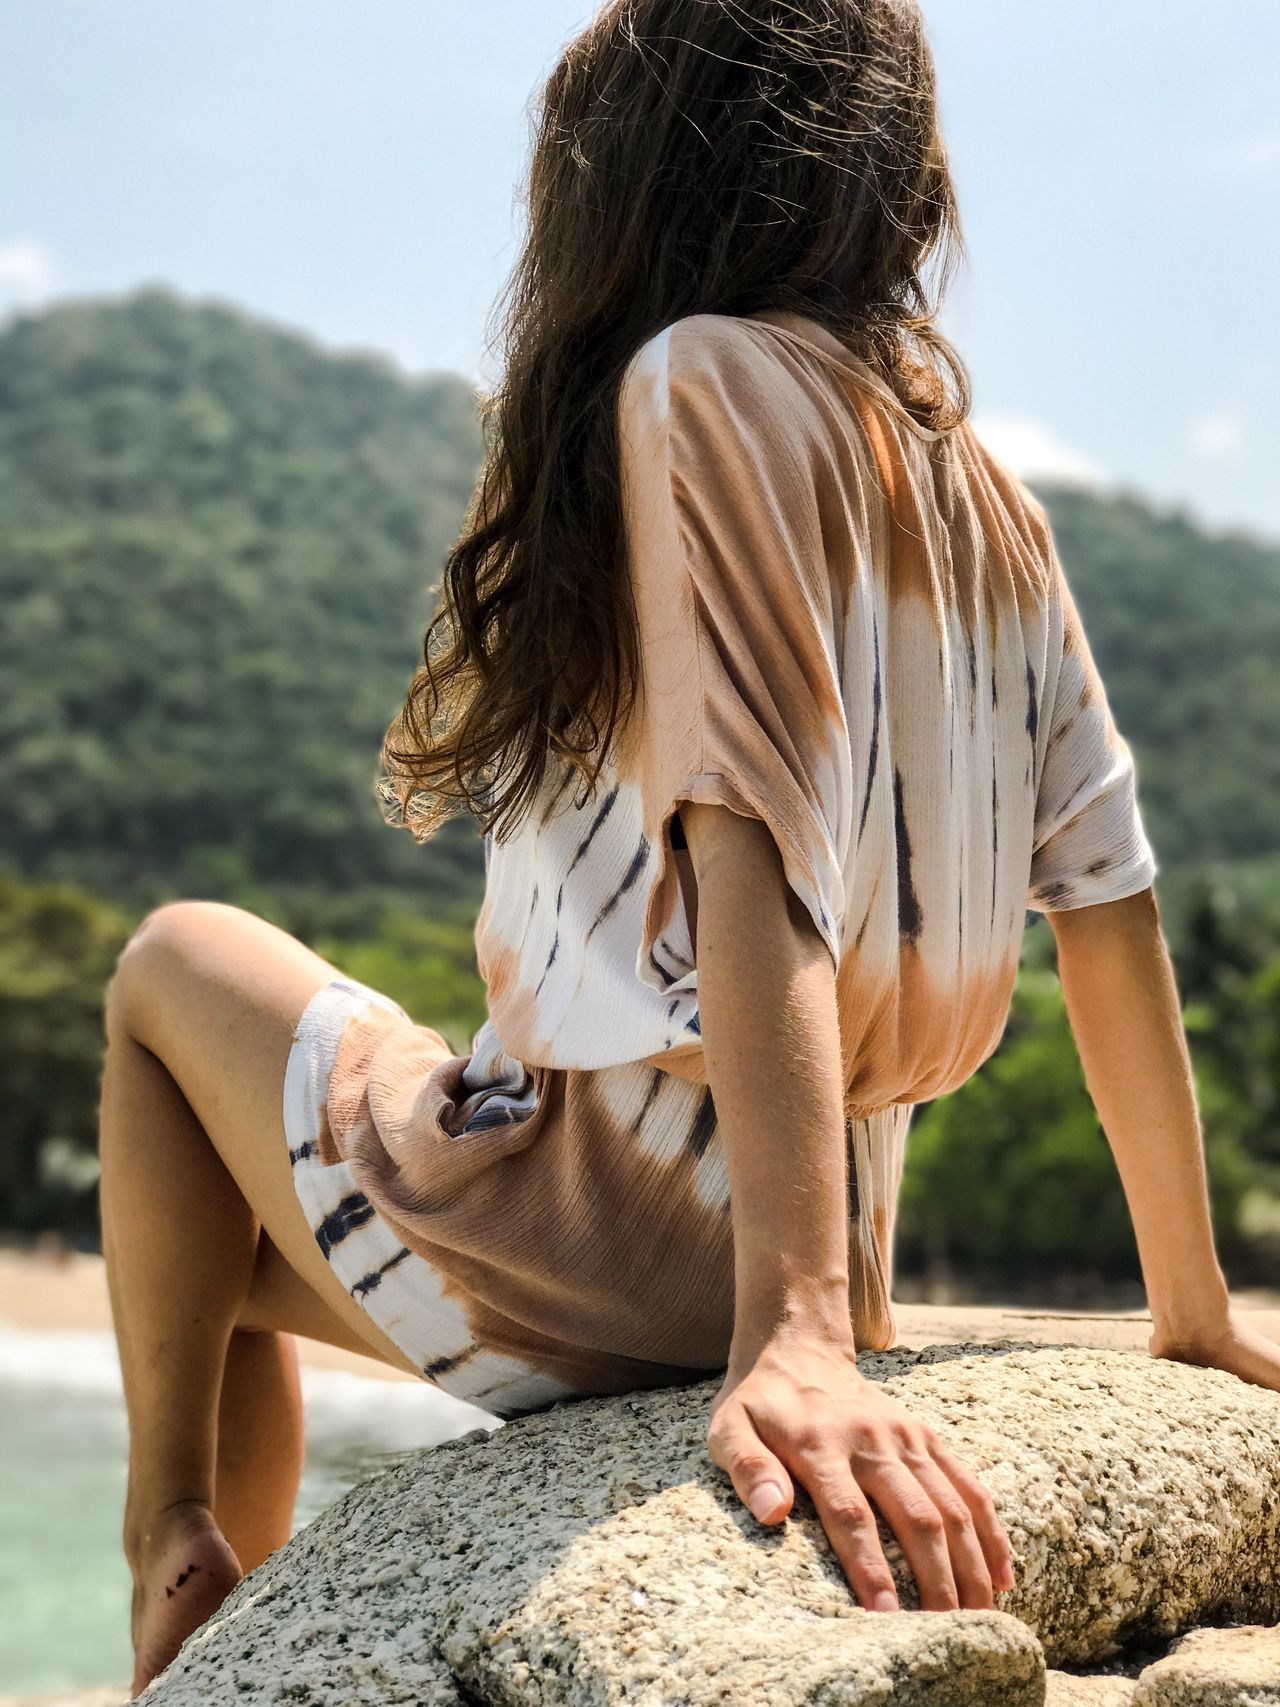 Adult Adults Only Adventure Close-up Day Enjoying The Sun Focus On Foreground Leisure Activity Long Hair Mountain Nature One Person One Woman Only One Young Woman Only Only Women Outdoors People Portrait Of A Woman Rear View Sitting Summer Travel Vacations Women Young Adult